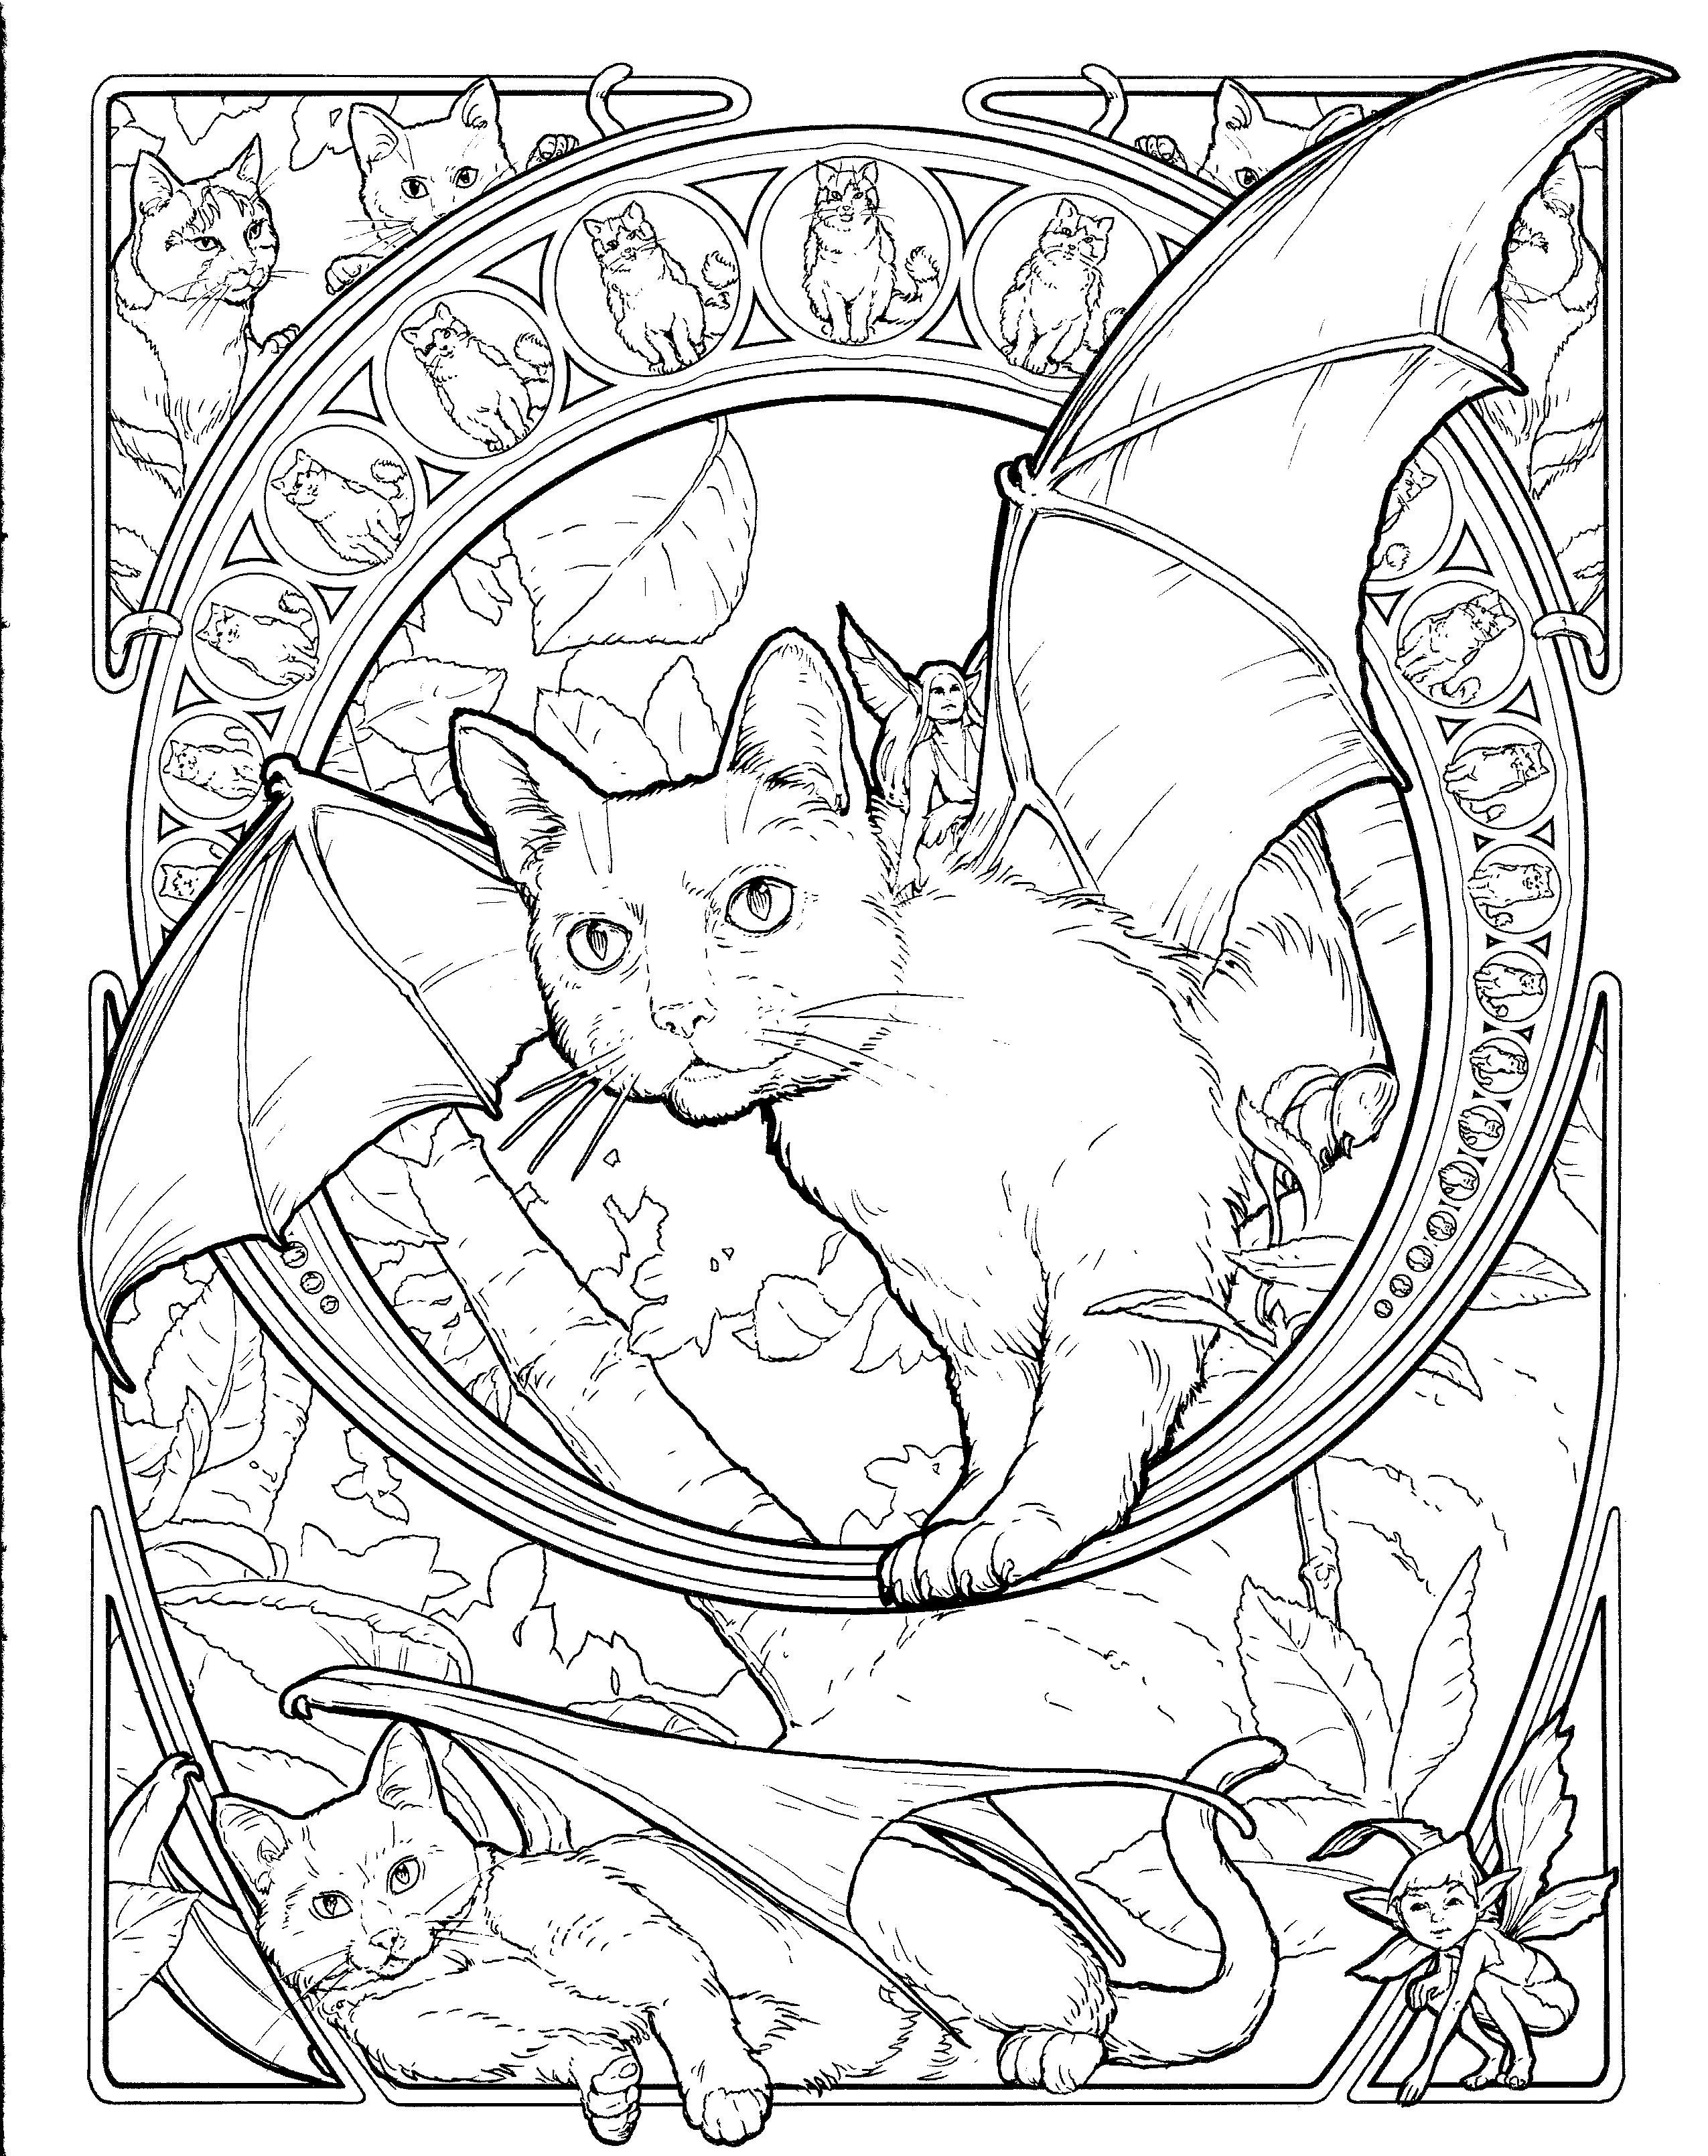 celestial sun and moon sun and moon coloring pages